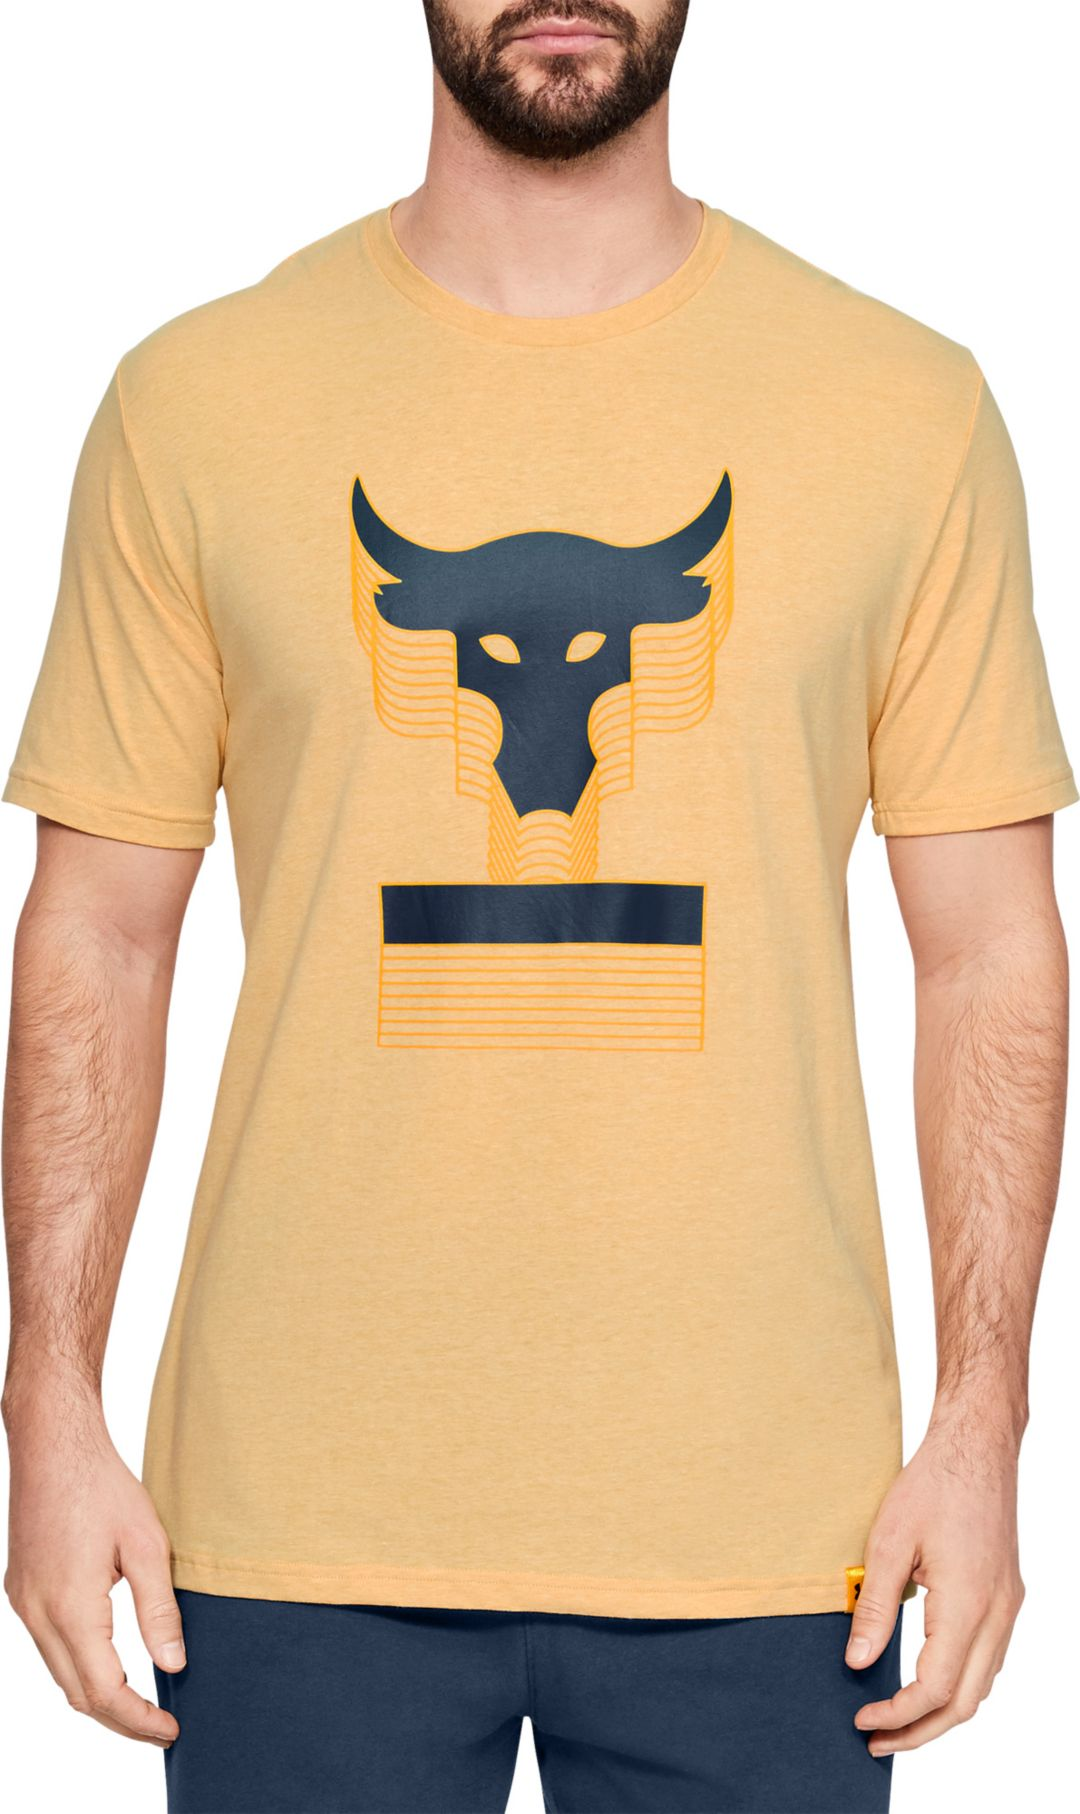 b37180b2 Under Armour Men's Project Rock Above The Bar Graphic T-Shirt.  noImageFound. Previous